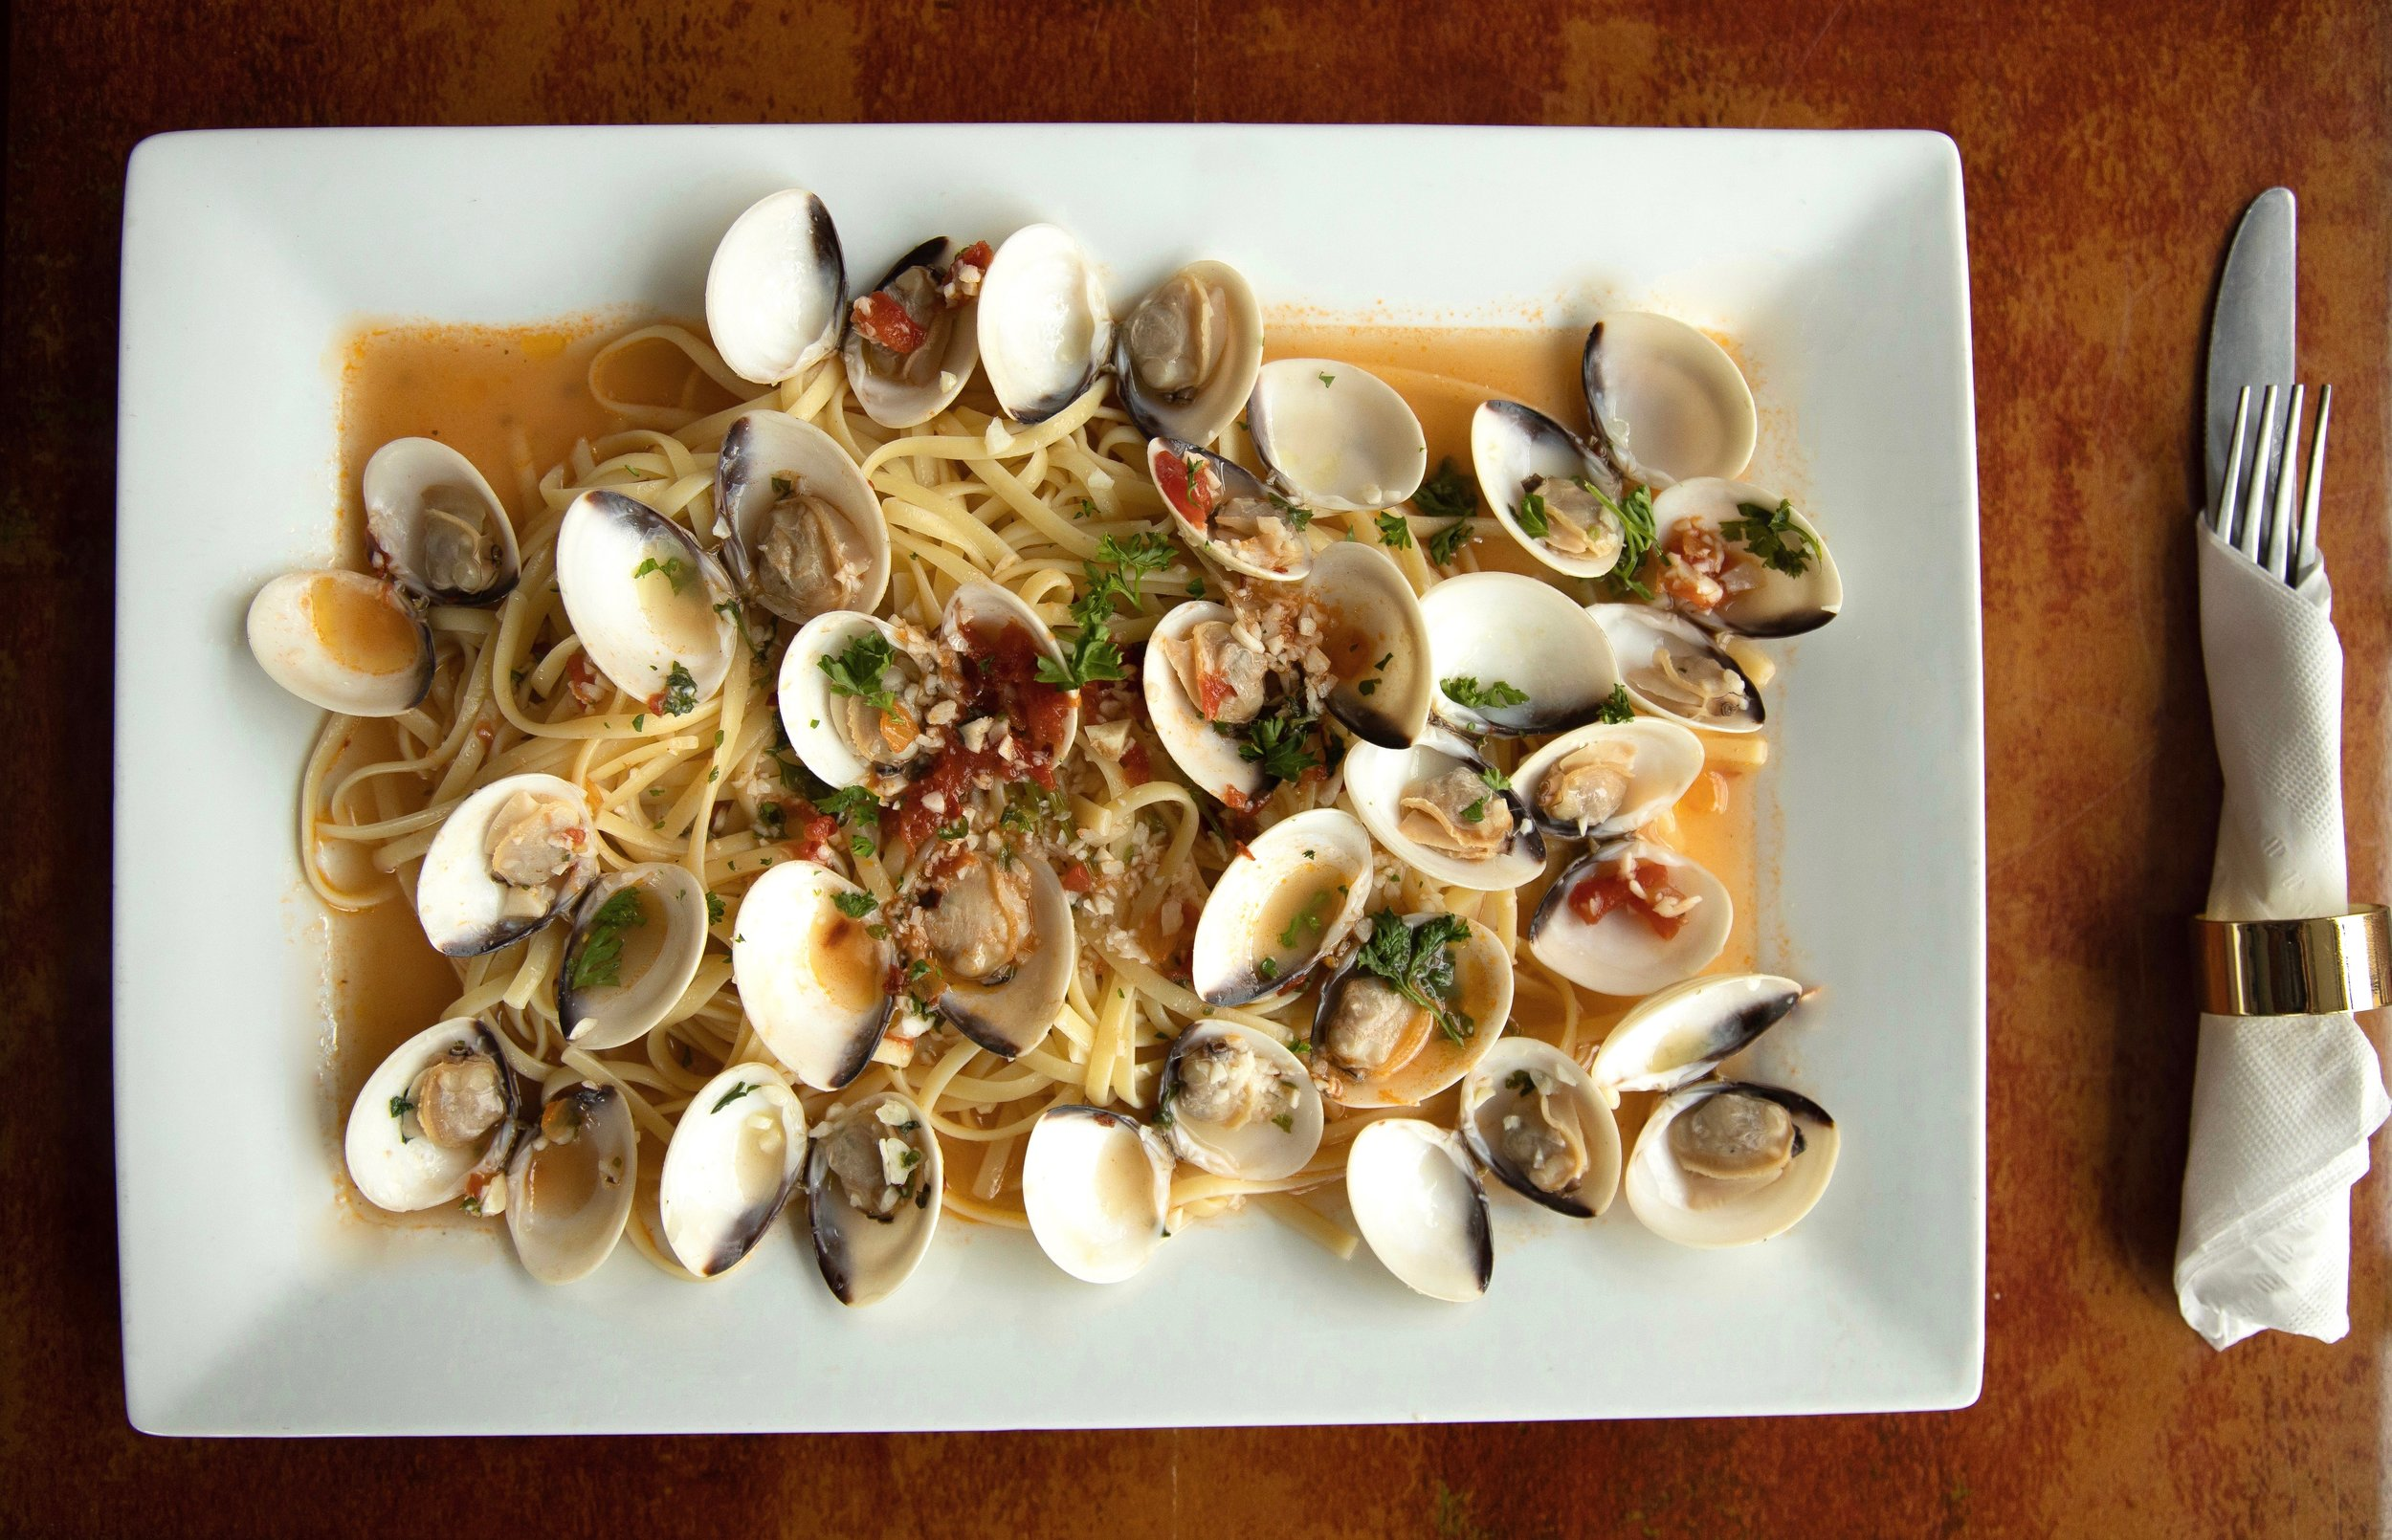 Linguini with Clams - Little neck clams roasted in garlic white sauce